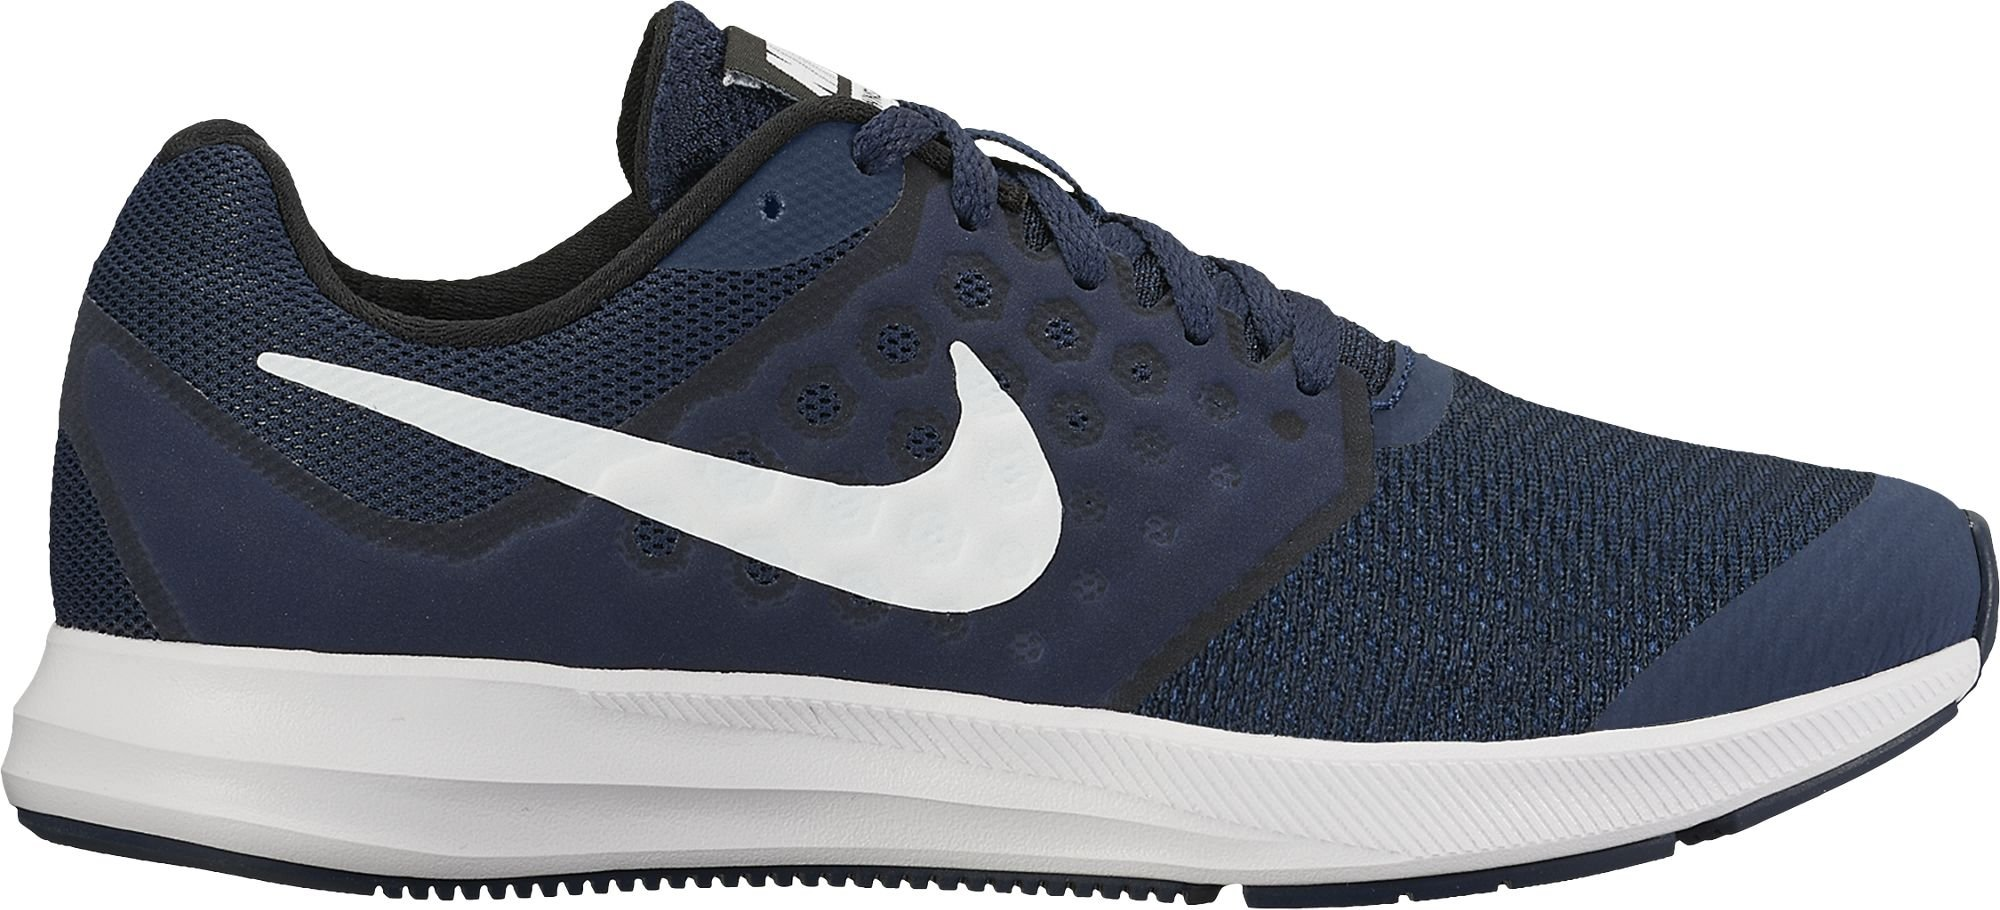 Boy's Nike Downshifter 7 (GS) Running Shoe (5.5, Navy) by NIKE